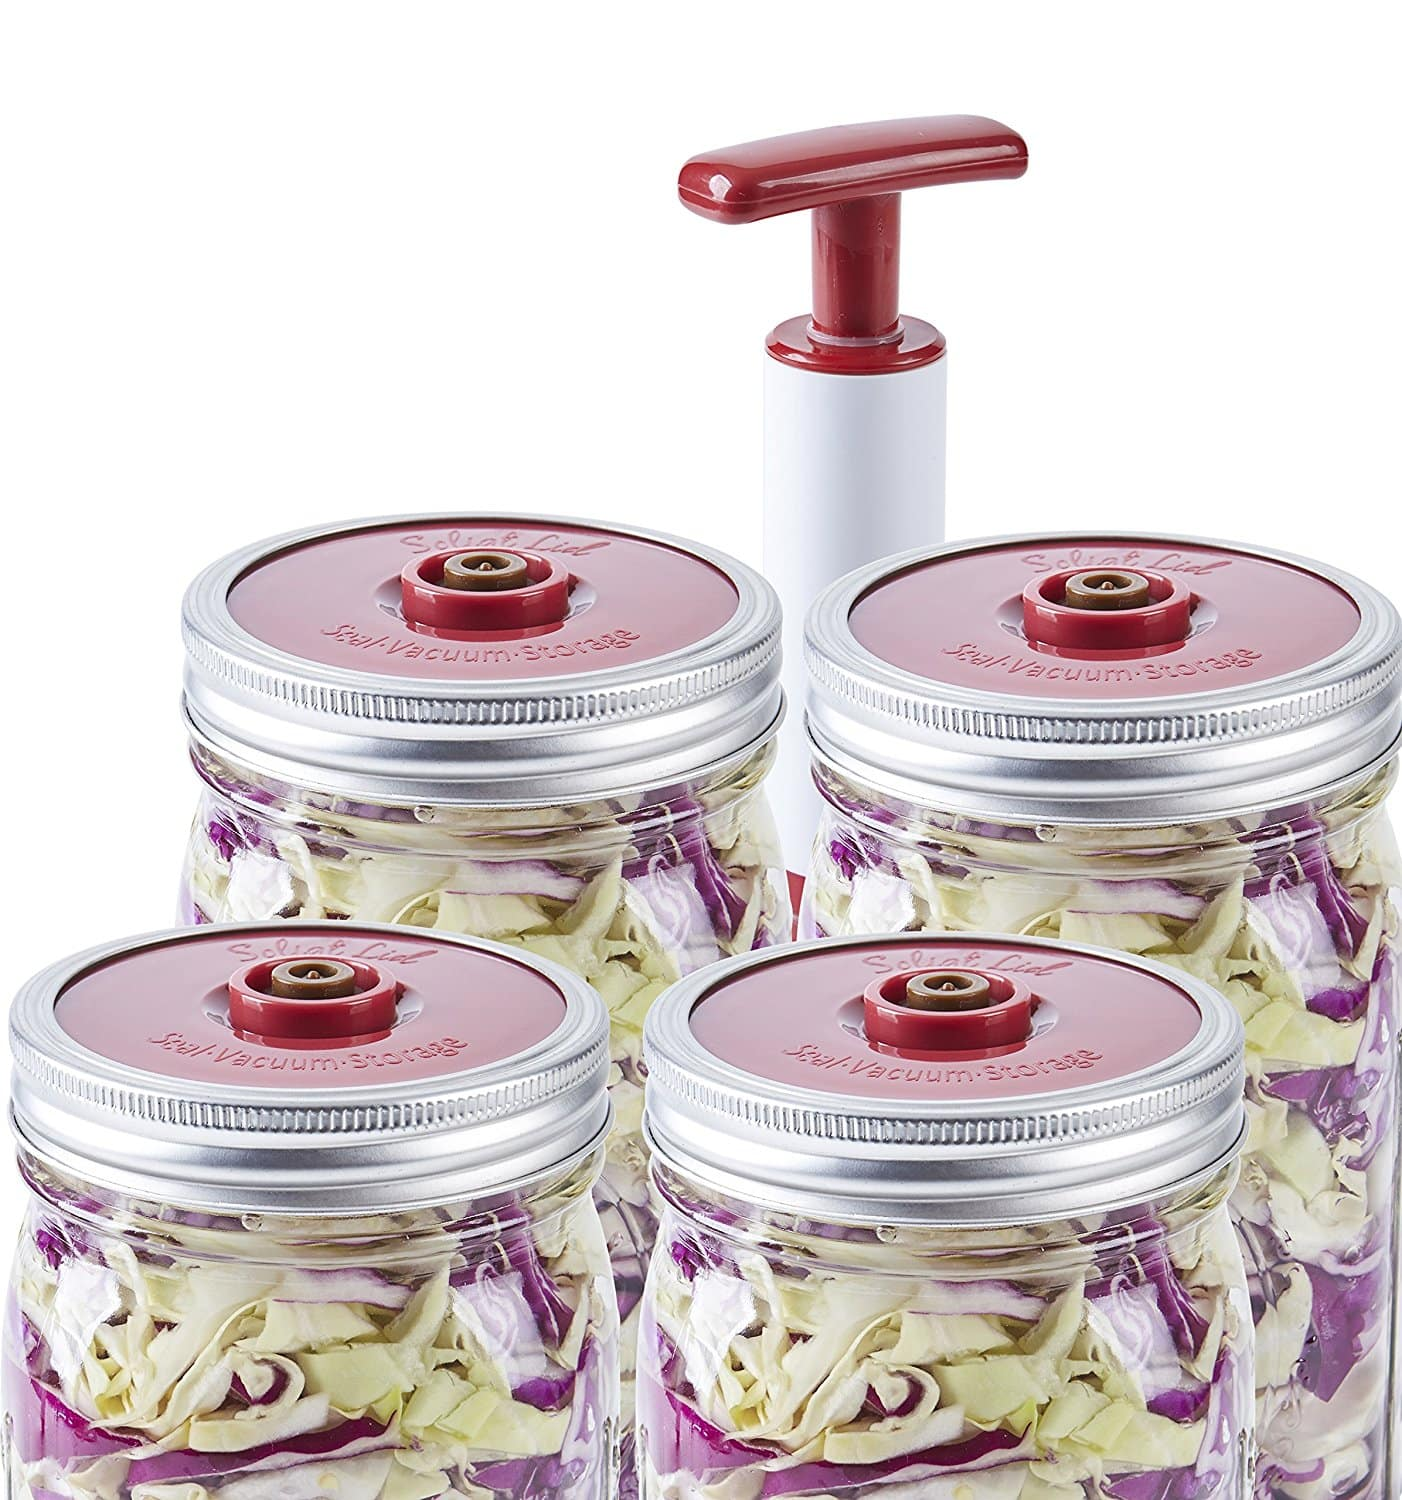 4-Pack of Fermentation Lids with Extractor Pump for $8.76 @ Amazon